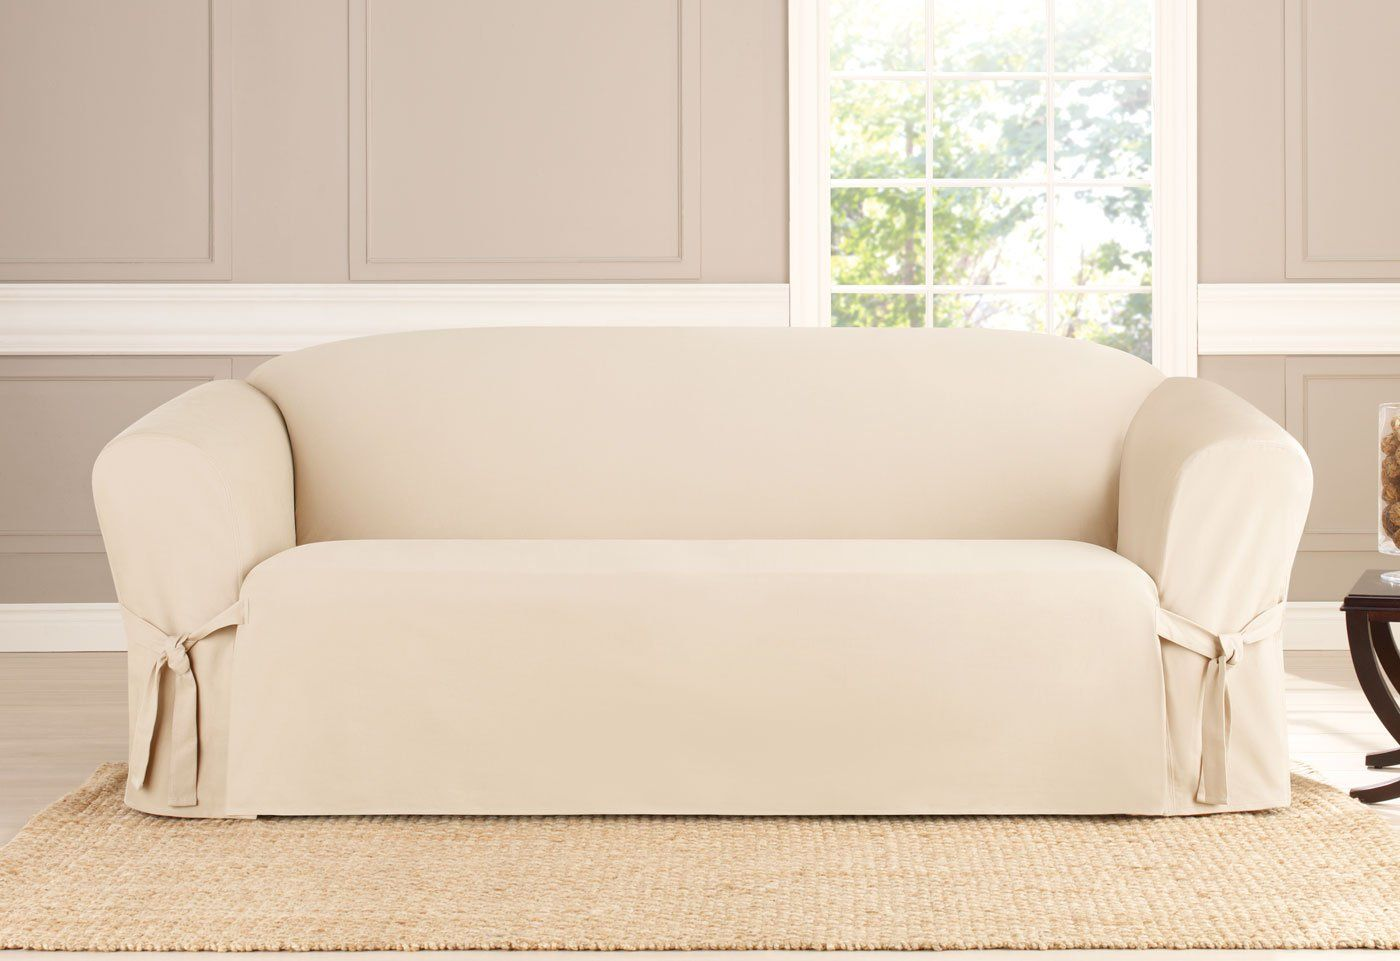 Heavyweight Cotton Duck One Piece Sofa Slipcover 100 Cotton Tailored Layered Skirt Machine Washable Furniture Slipcovers Slipcovers Loveseat Slipcovers